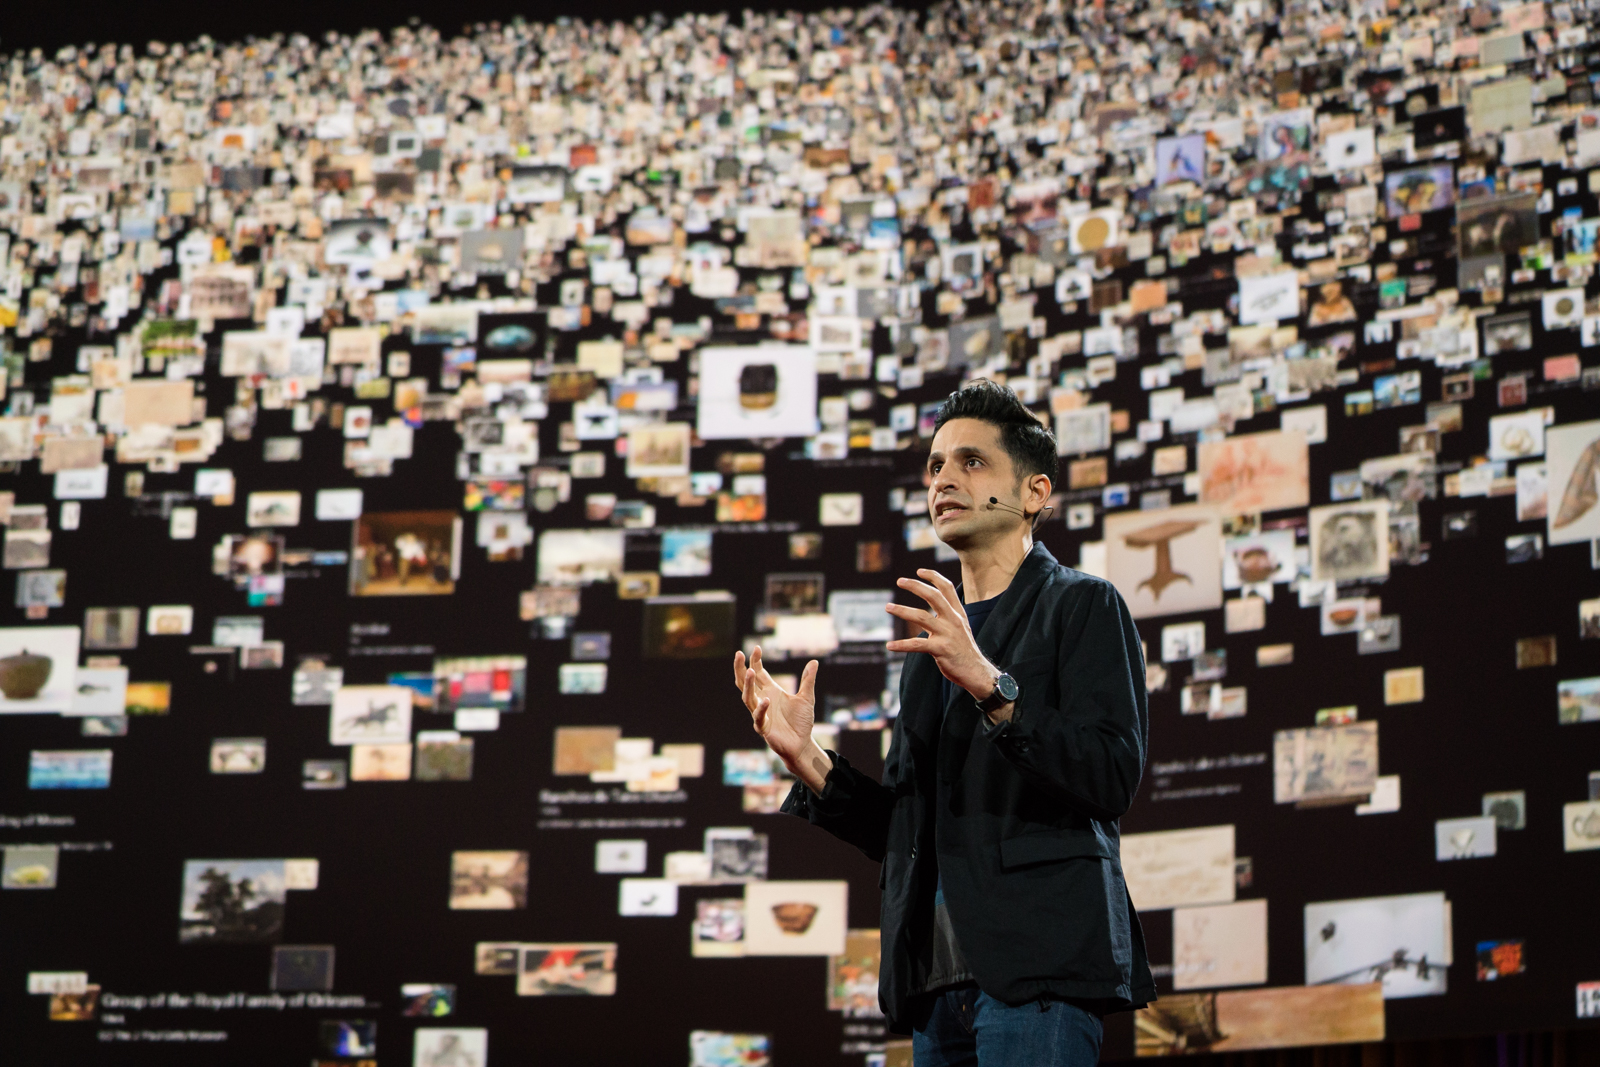 Amit Sood speaks at TED2016 - Dream, February 15-19, 2016, Vancouver Convention Center, Vancouver, Canada. Photo: Bret Hartman / TED